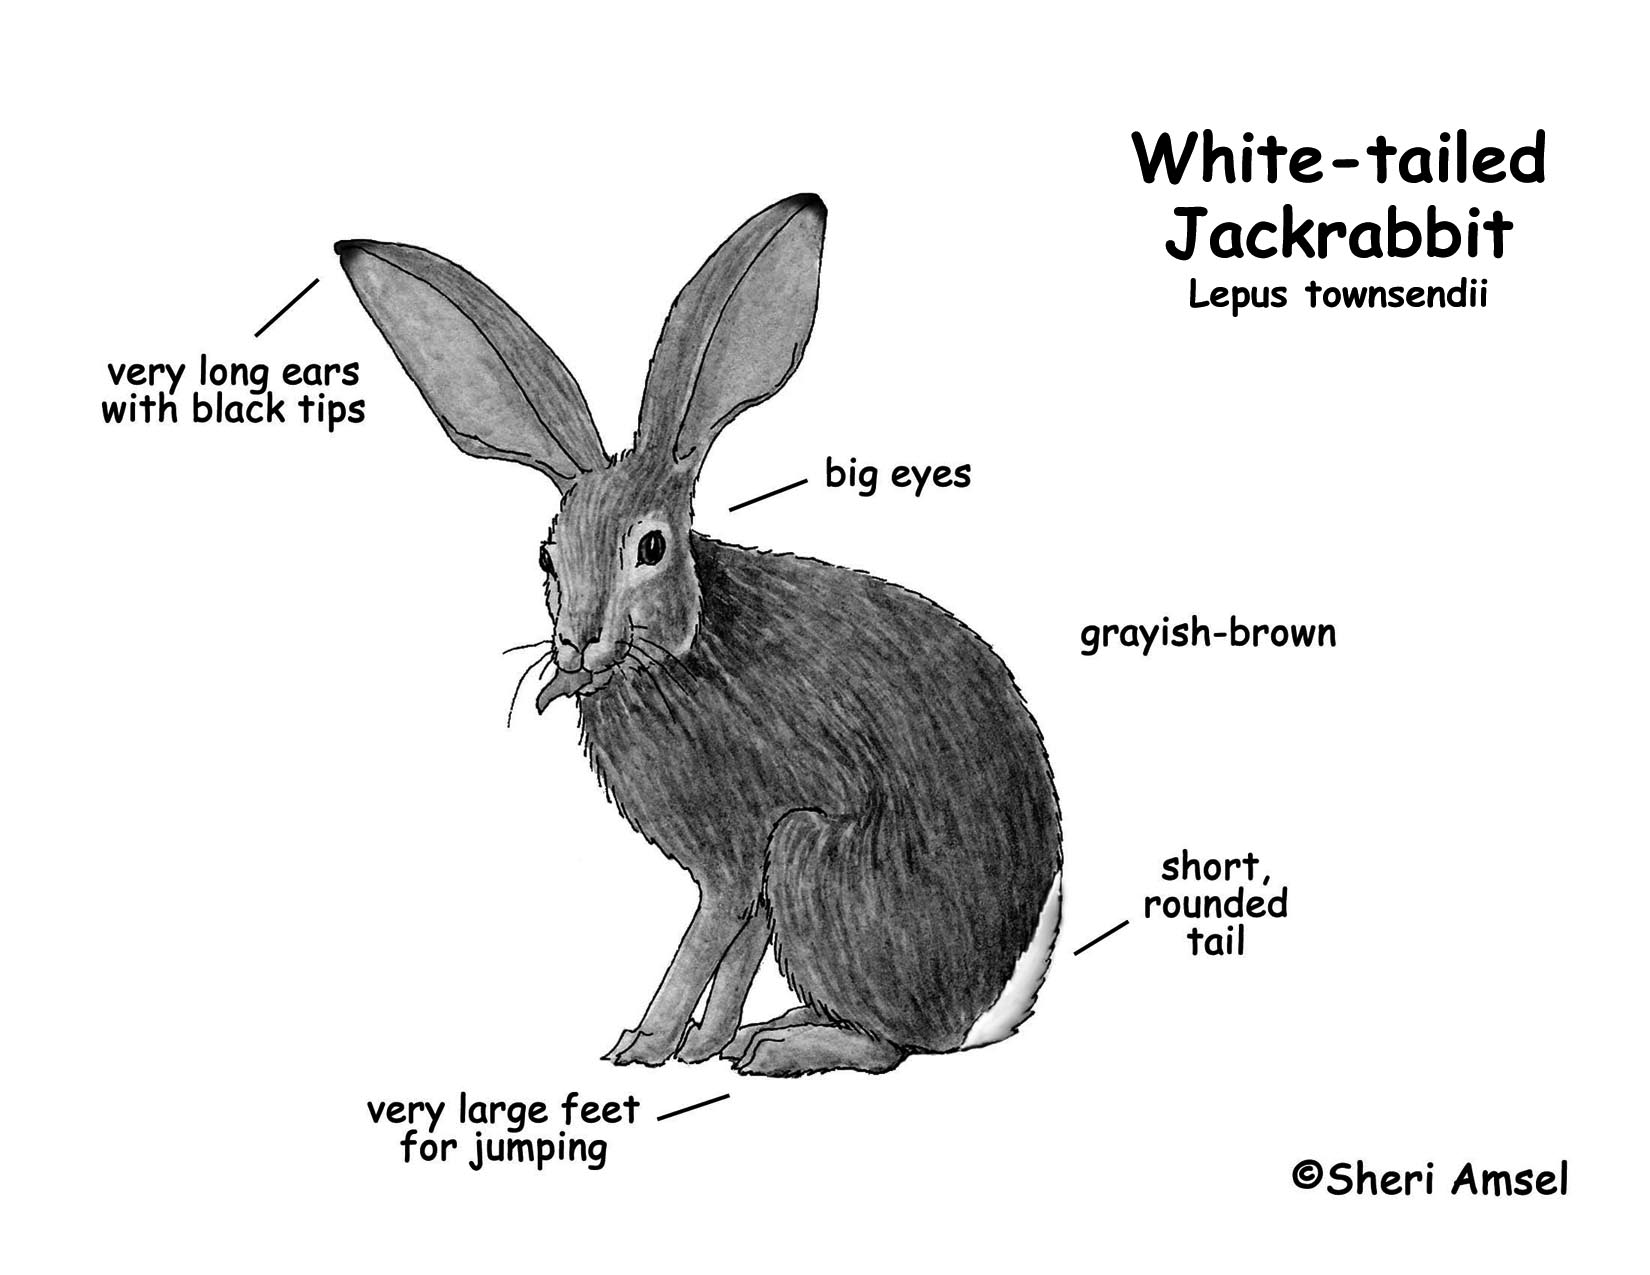 Jackrabbit White Tailed